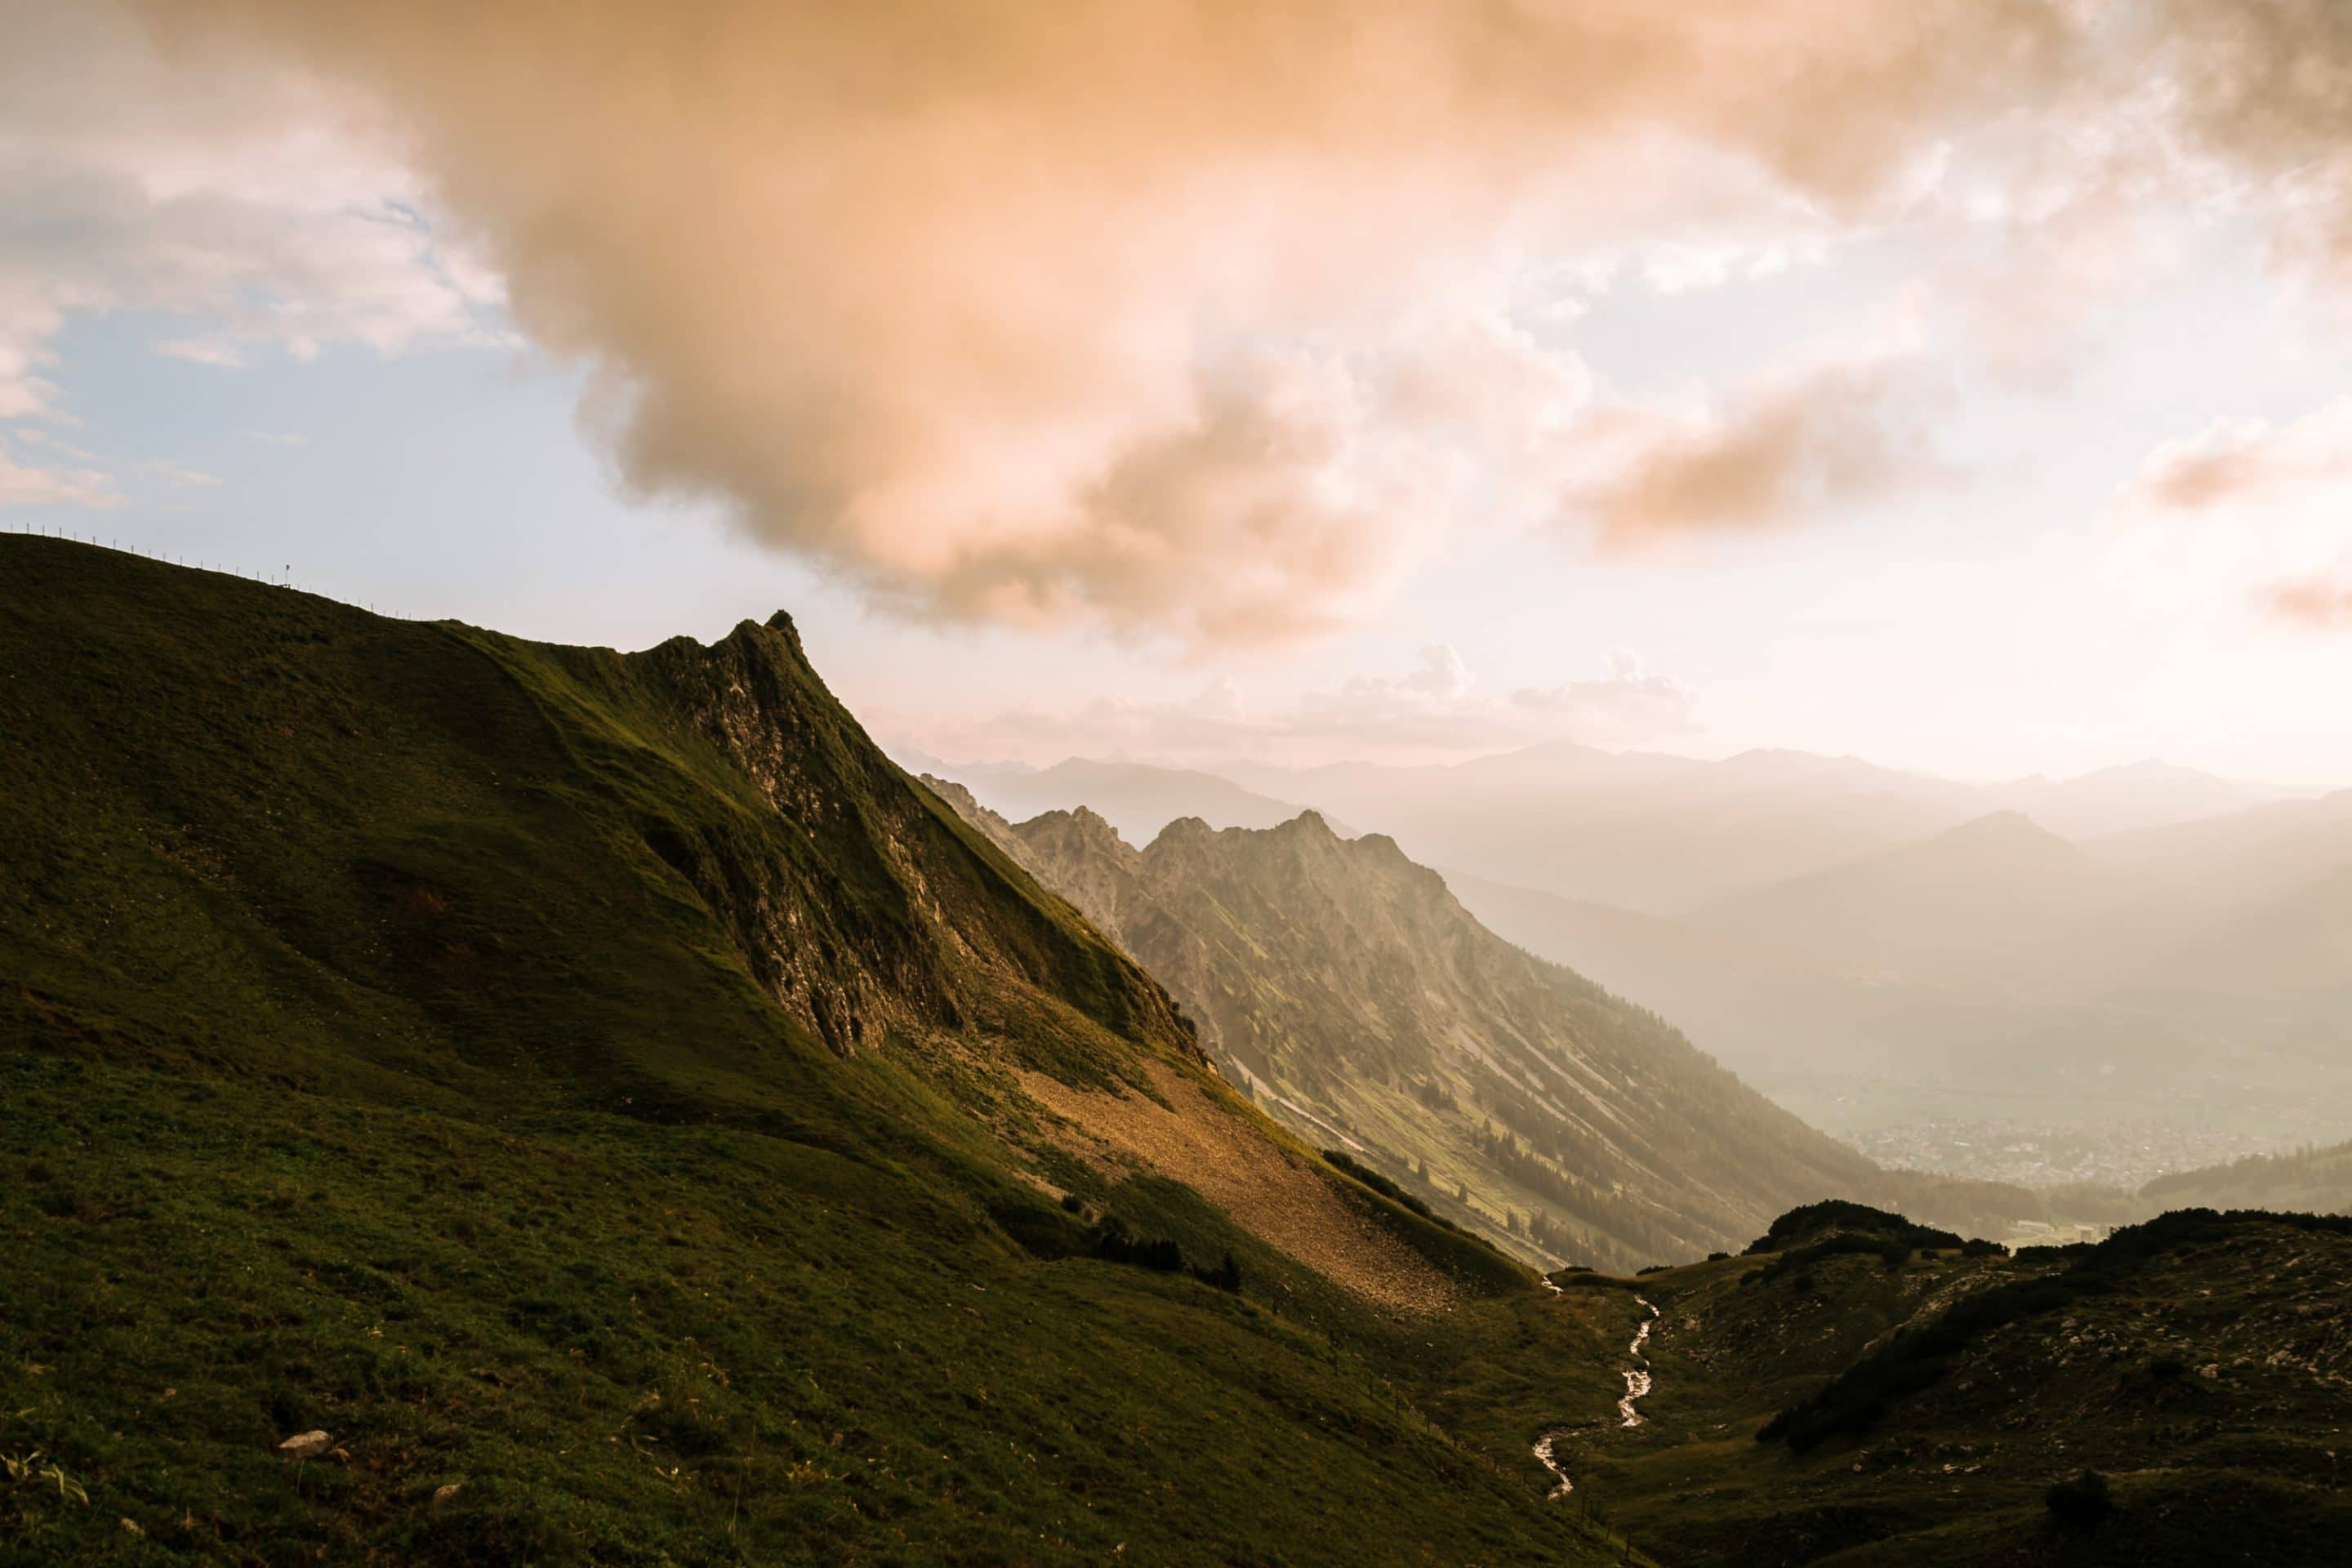 A beautiful burning sunset over the landscape of the Allgau Alps in southern Bavaria painting the mountain ridges orange by photographer Michael Schauer